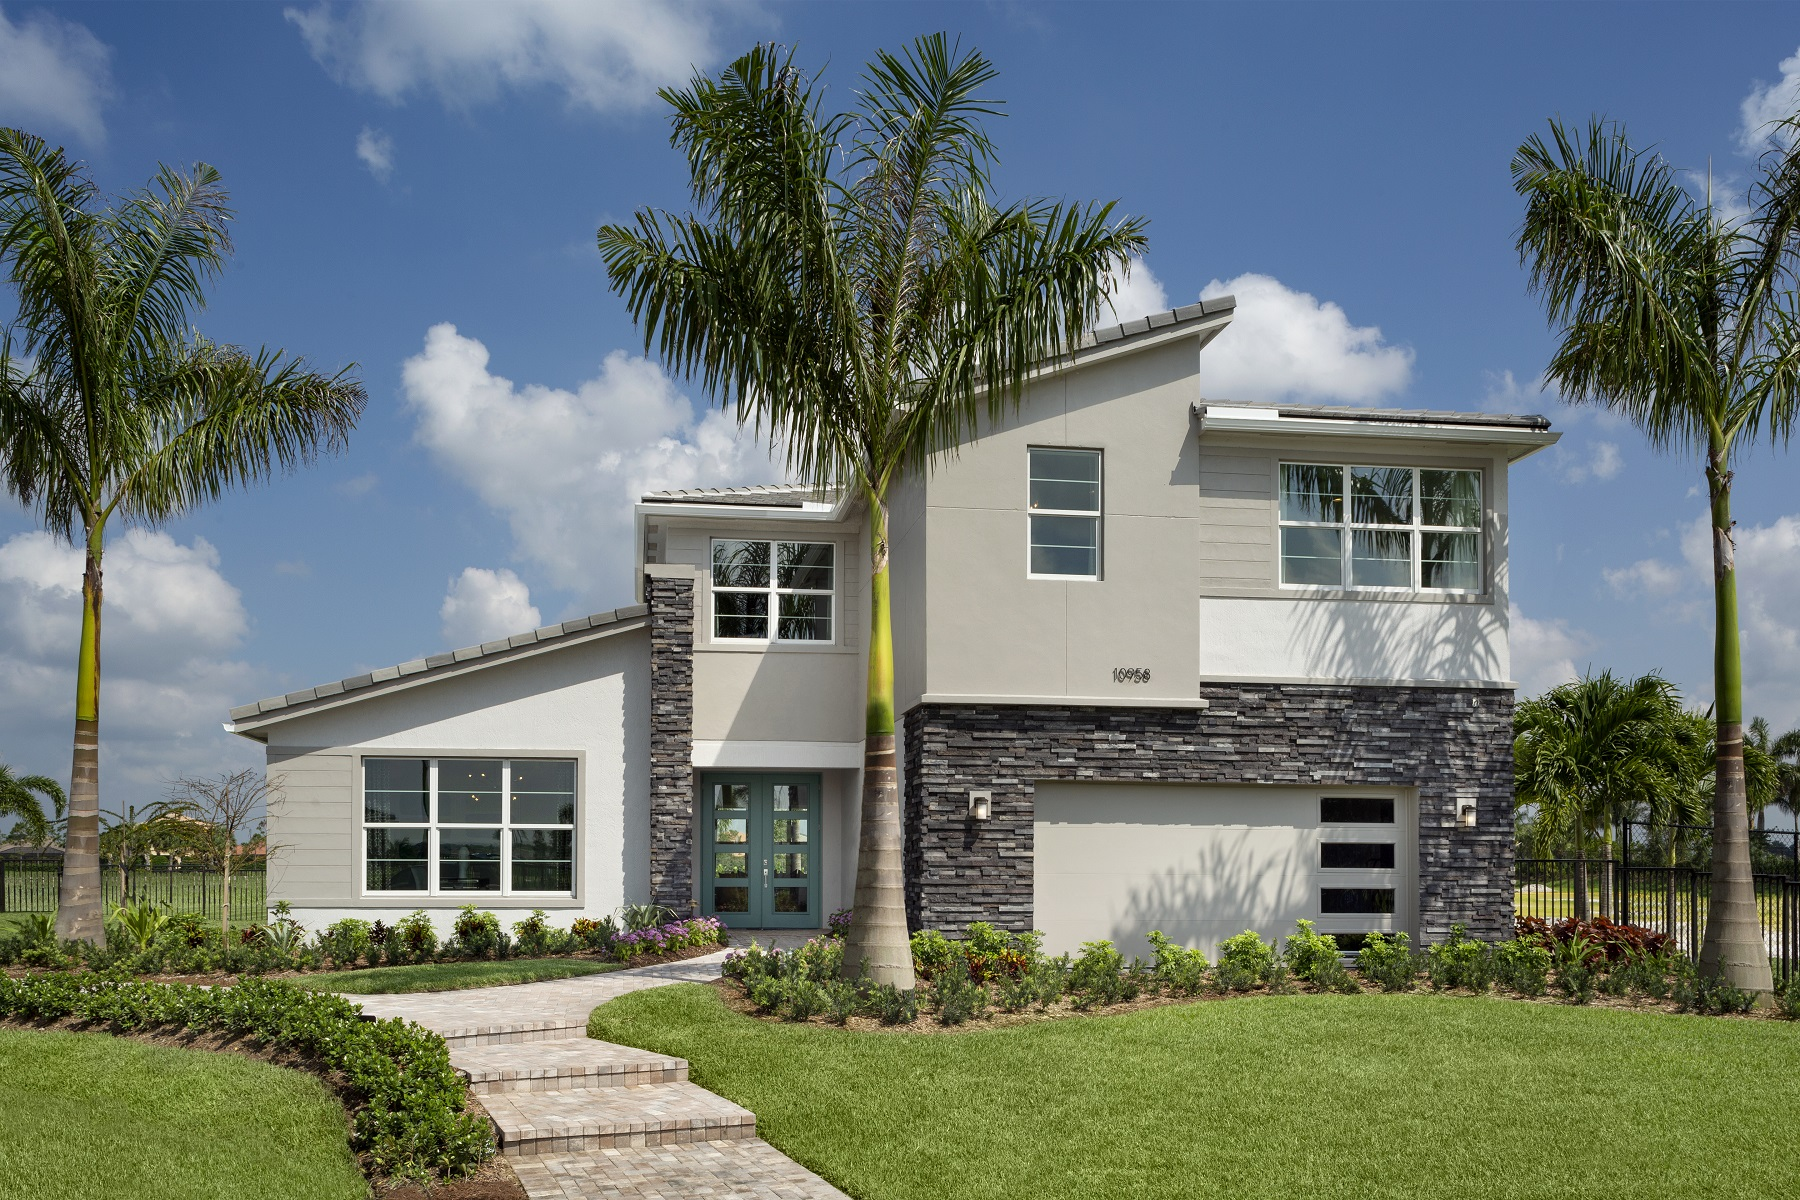 Rowan Plan Elevation Front at Tradition - Manderlie in Port St. Lucie Florida by Mattamy Homes